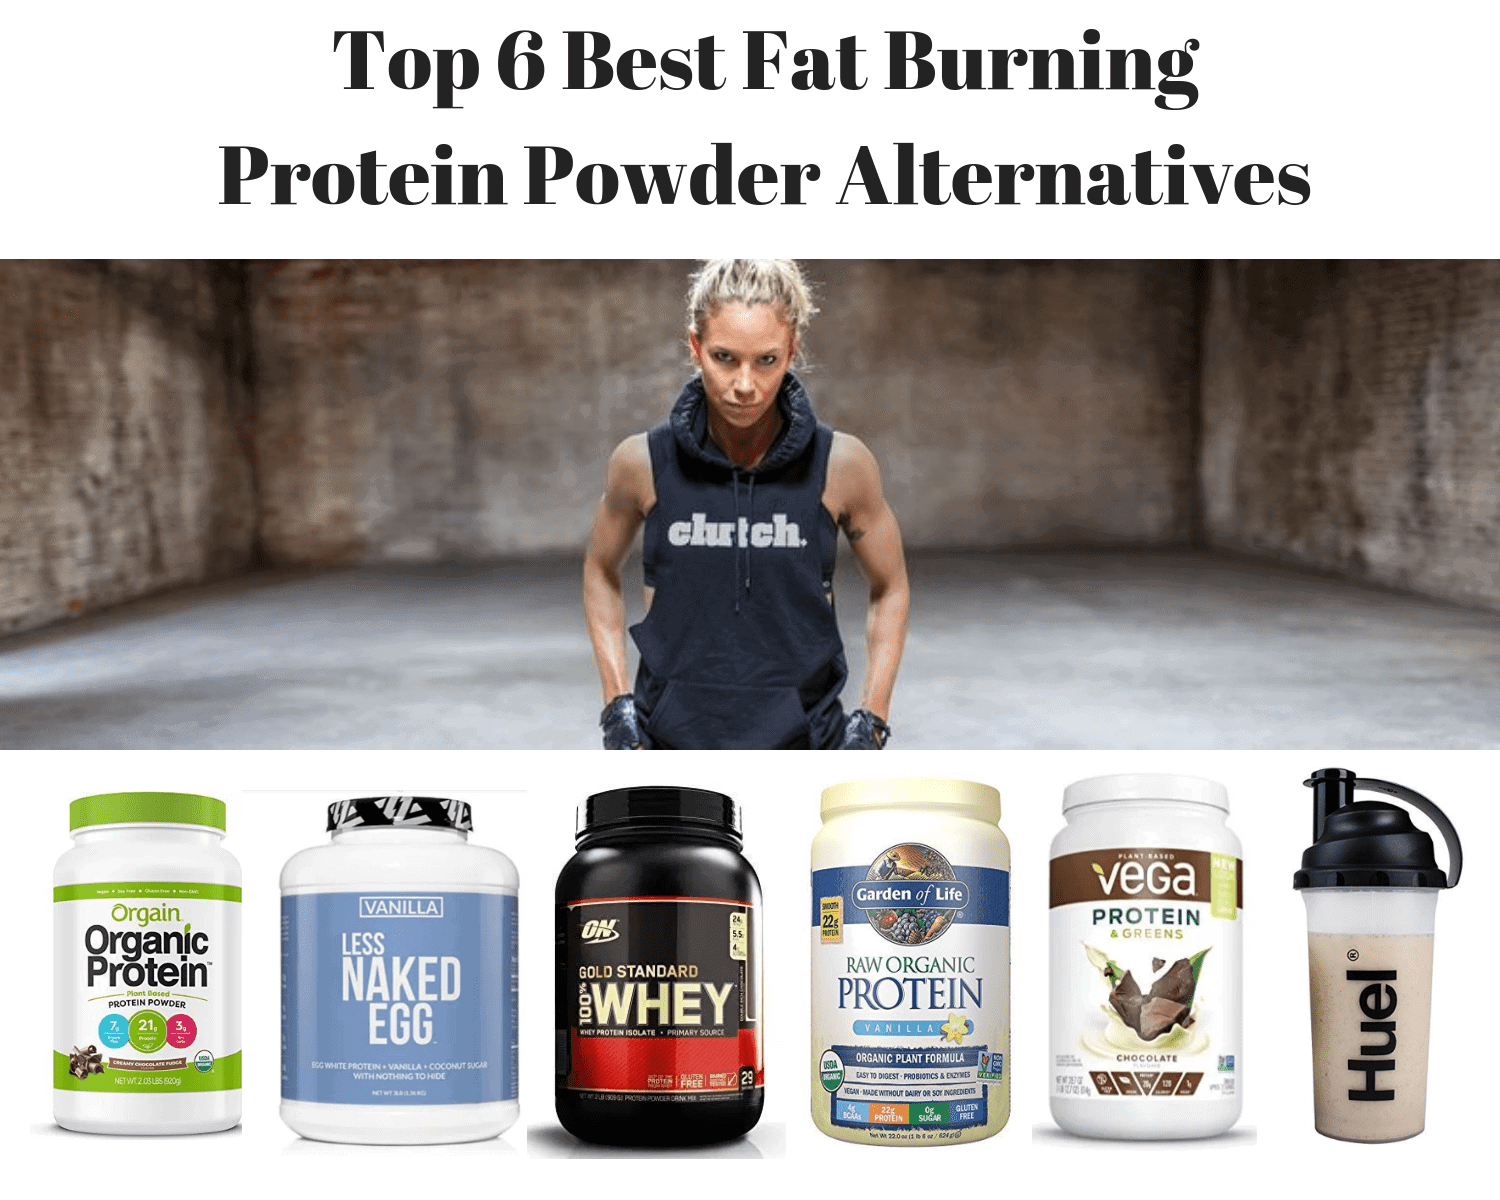 Top 6 Best Fat Burning Protein Powder Options (2019 Update)